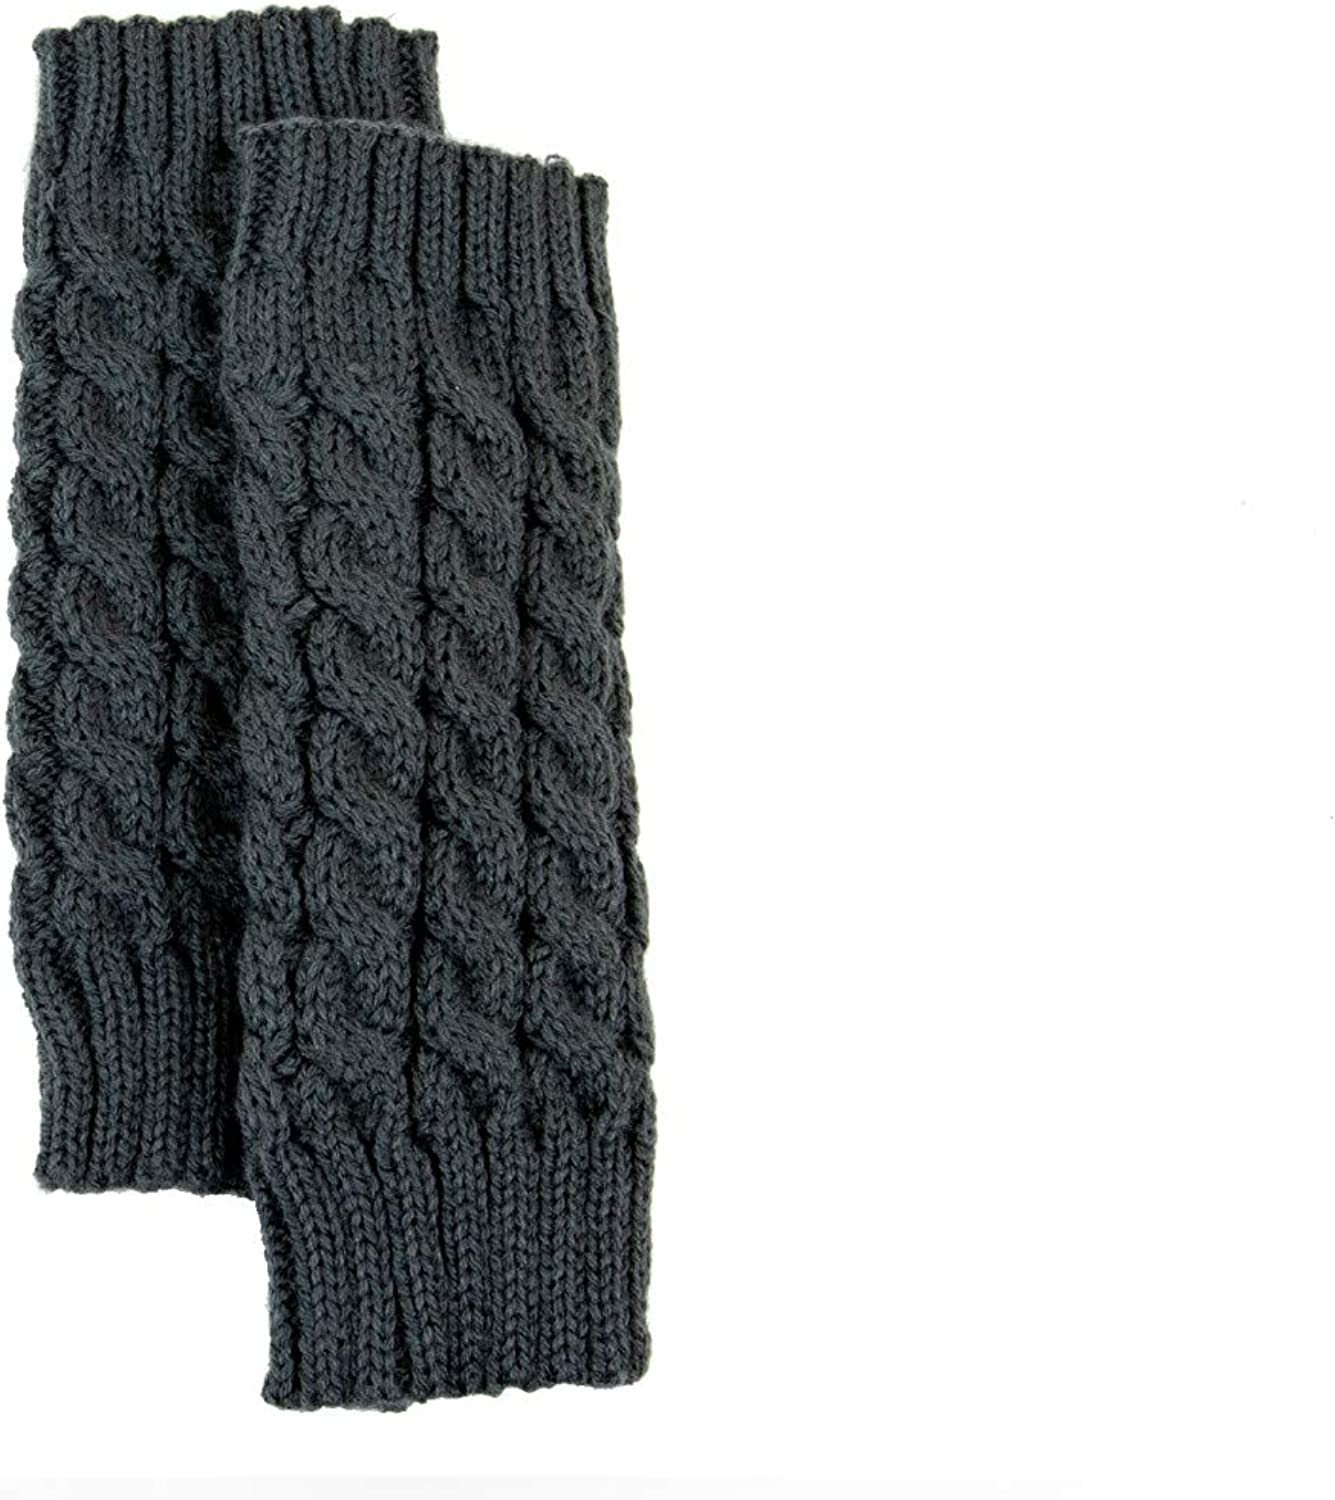 Exotic Identity Fingerless Gloves Cable Knit Tahoe Cold Weather Wear for Women - M - Grey